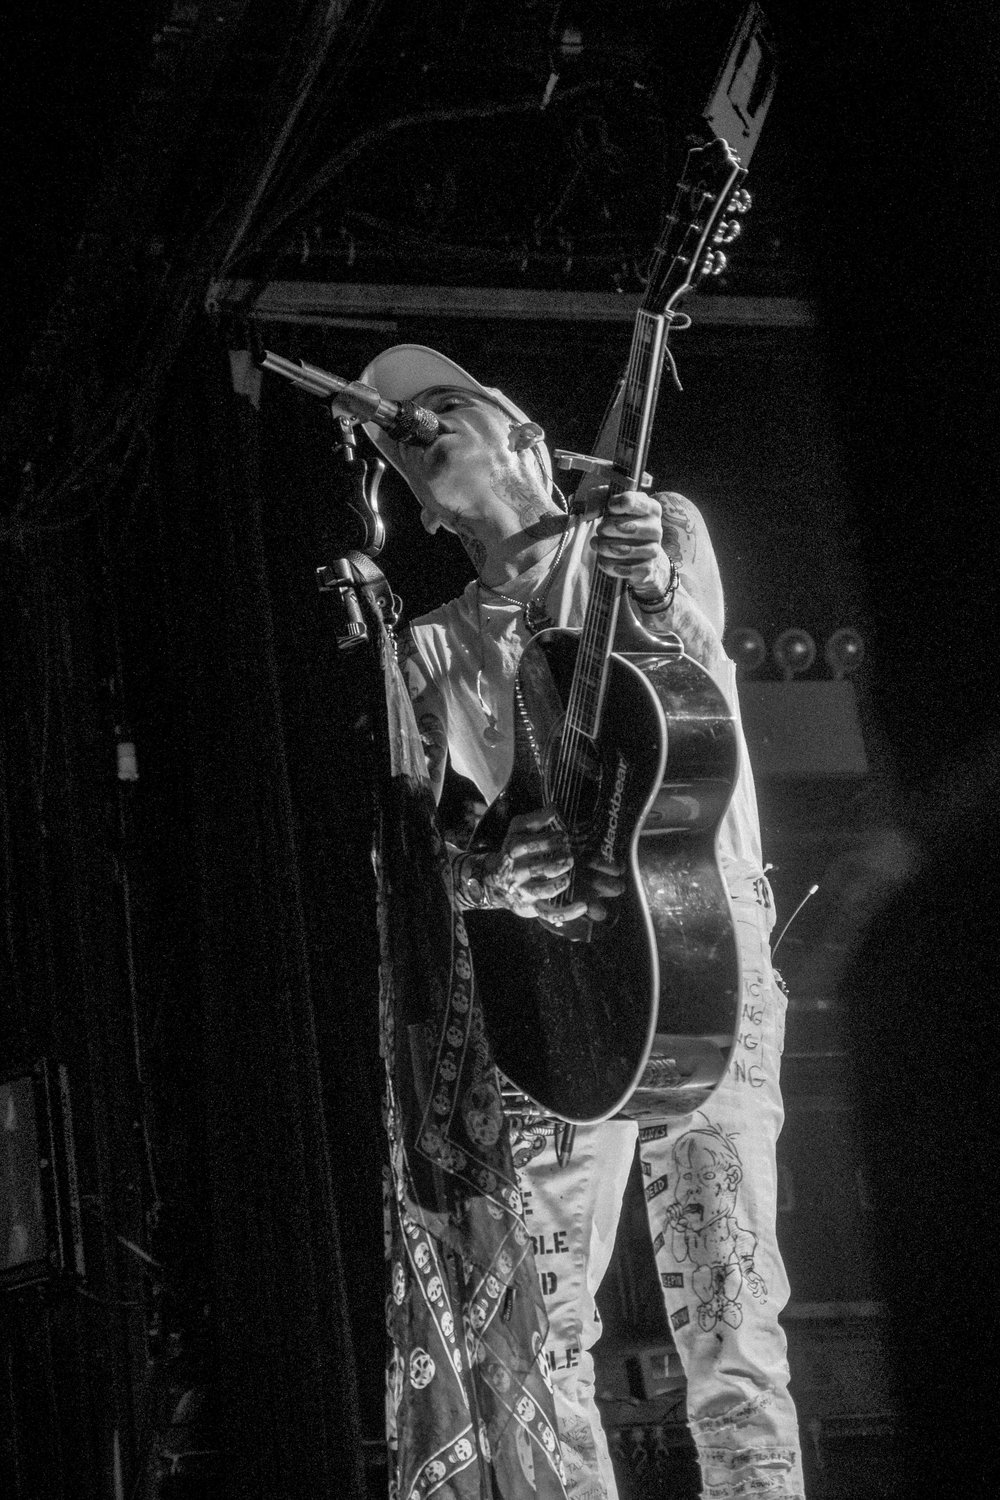 blackbear, irving plaza